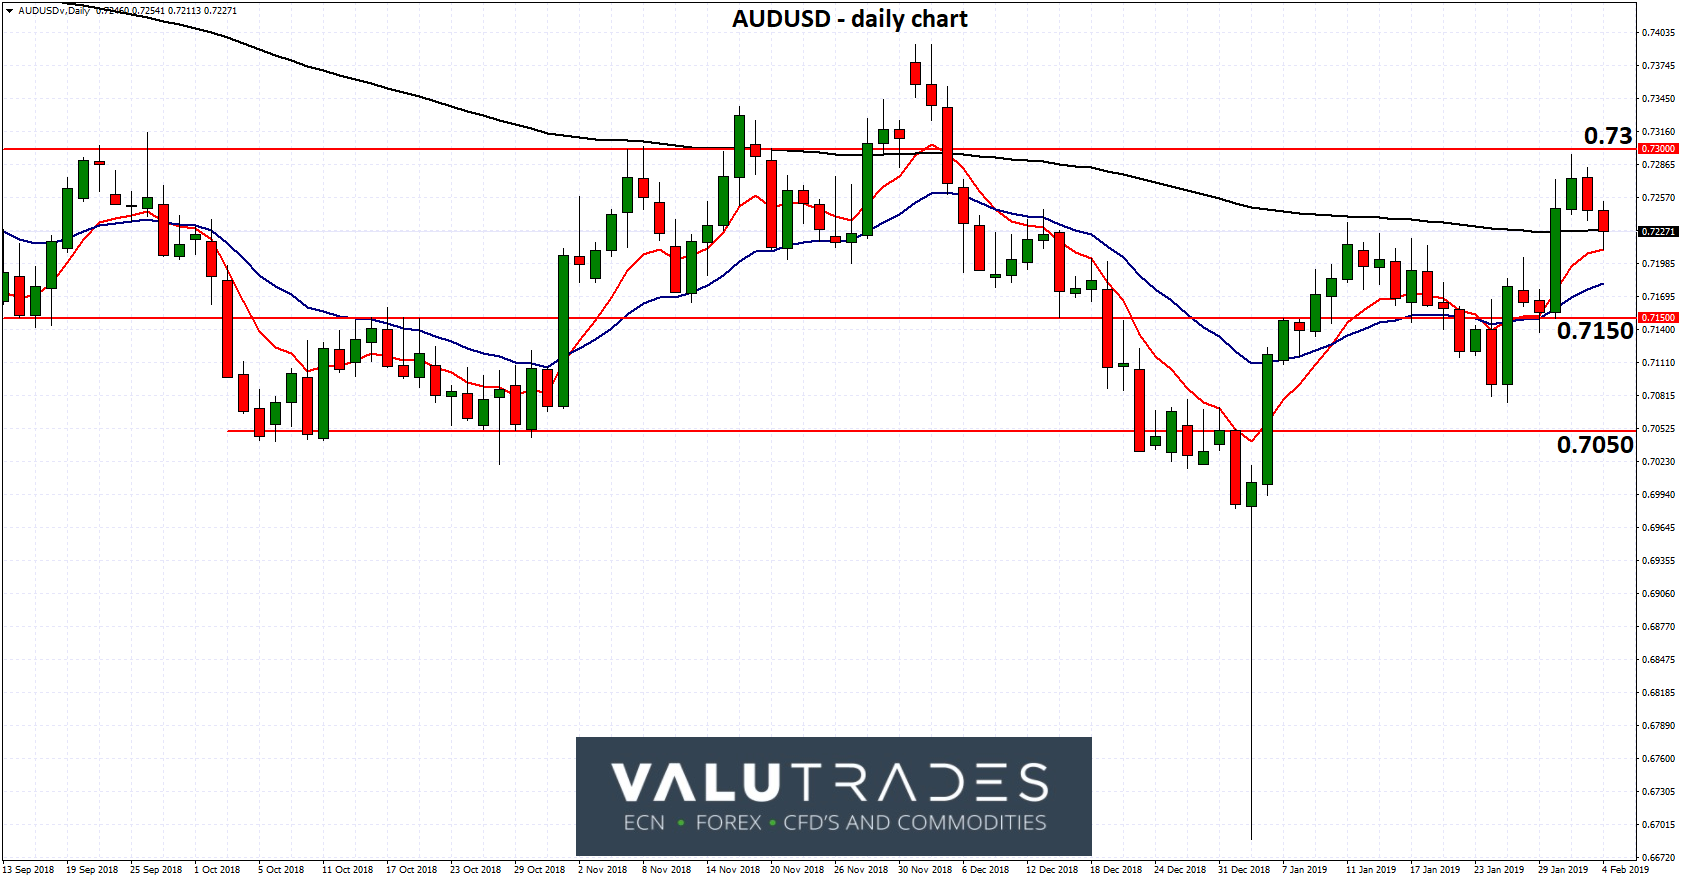 AUDUSD - Repelled from Resistance at 0.73 as RBA Meets